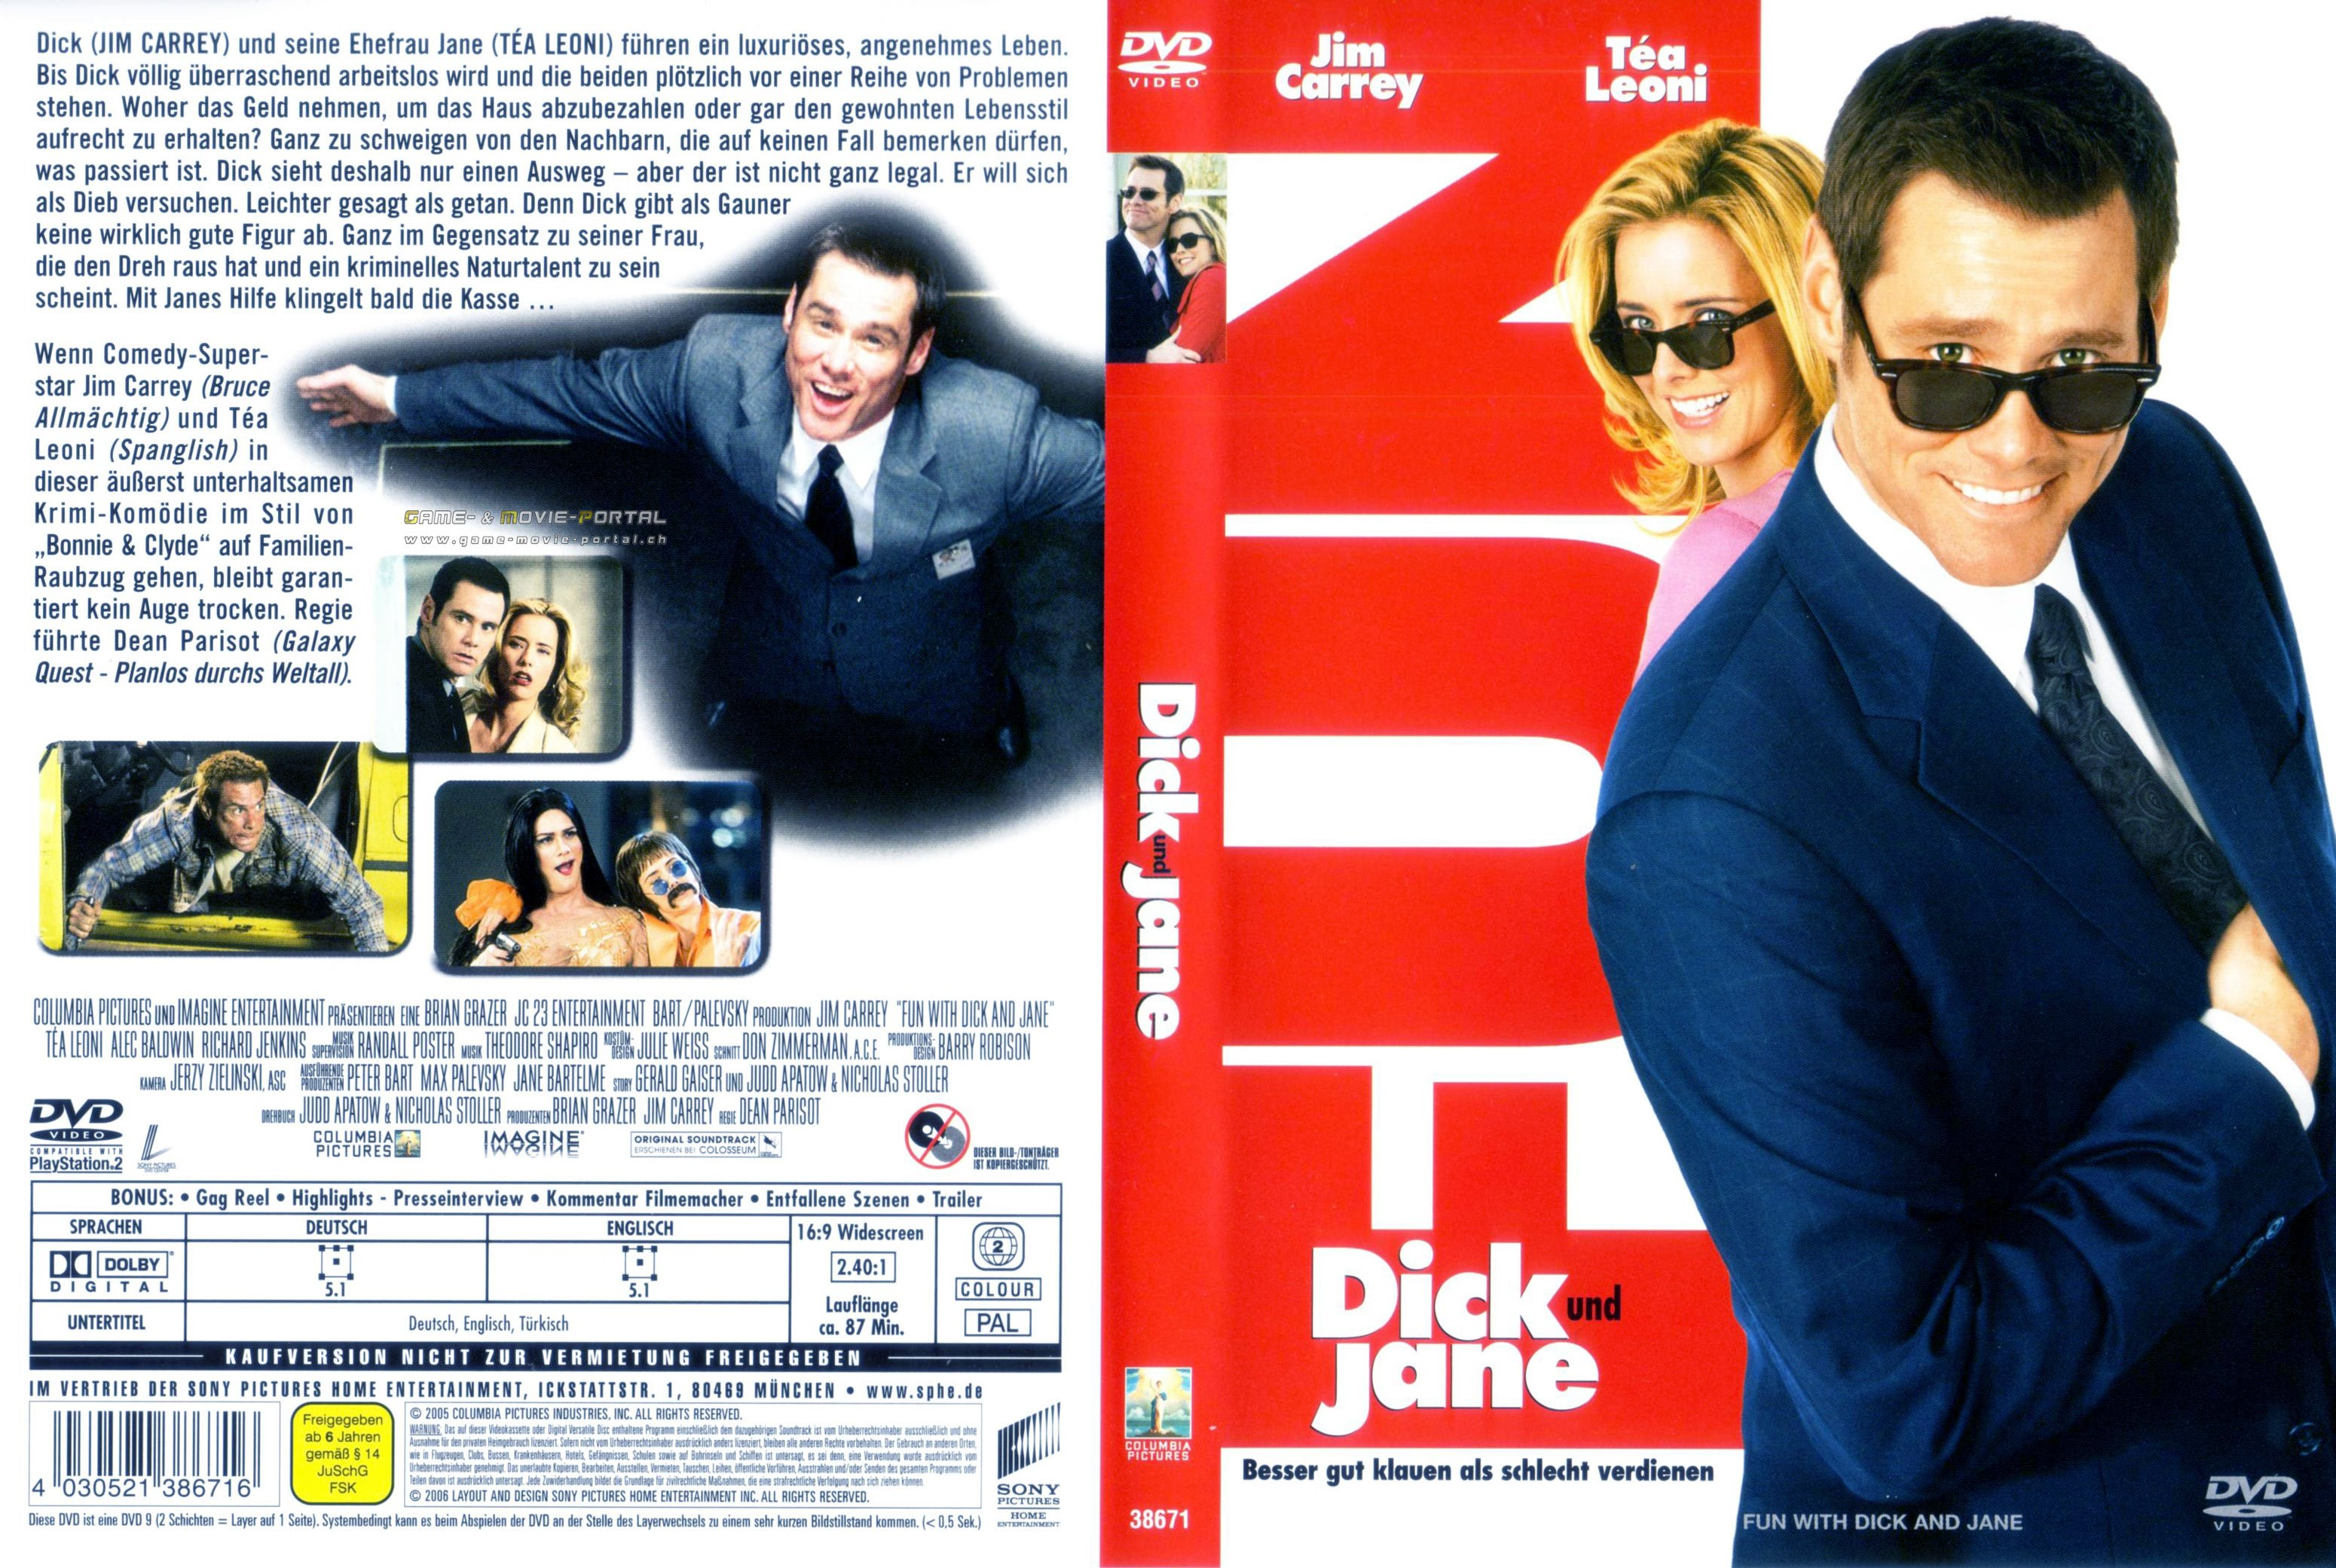 Dick and jane dvd cover